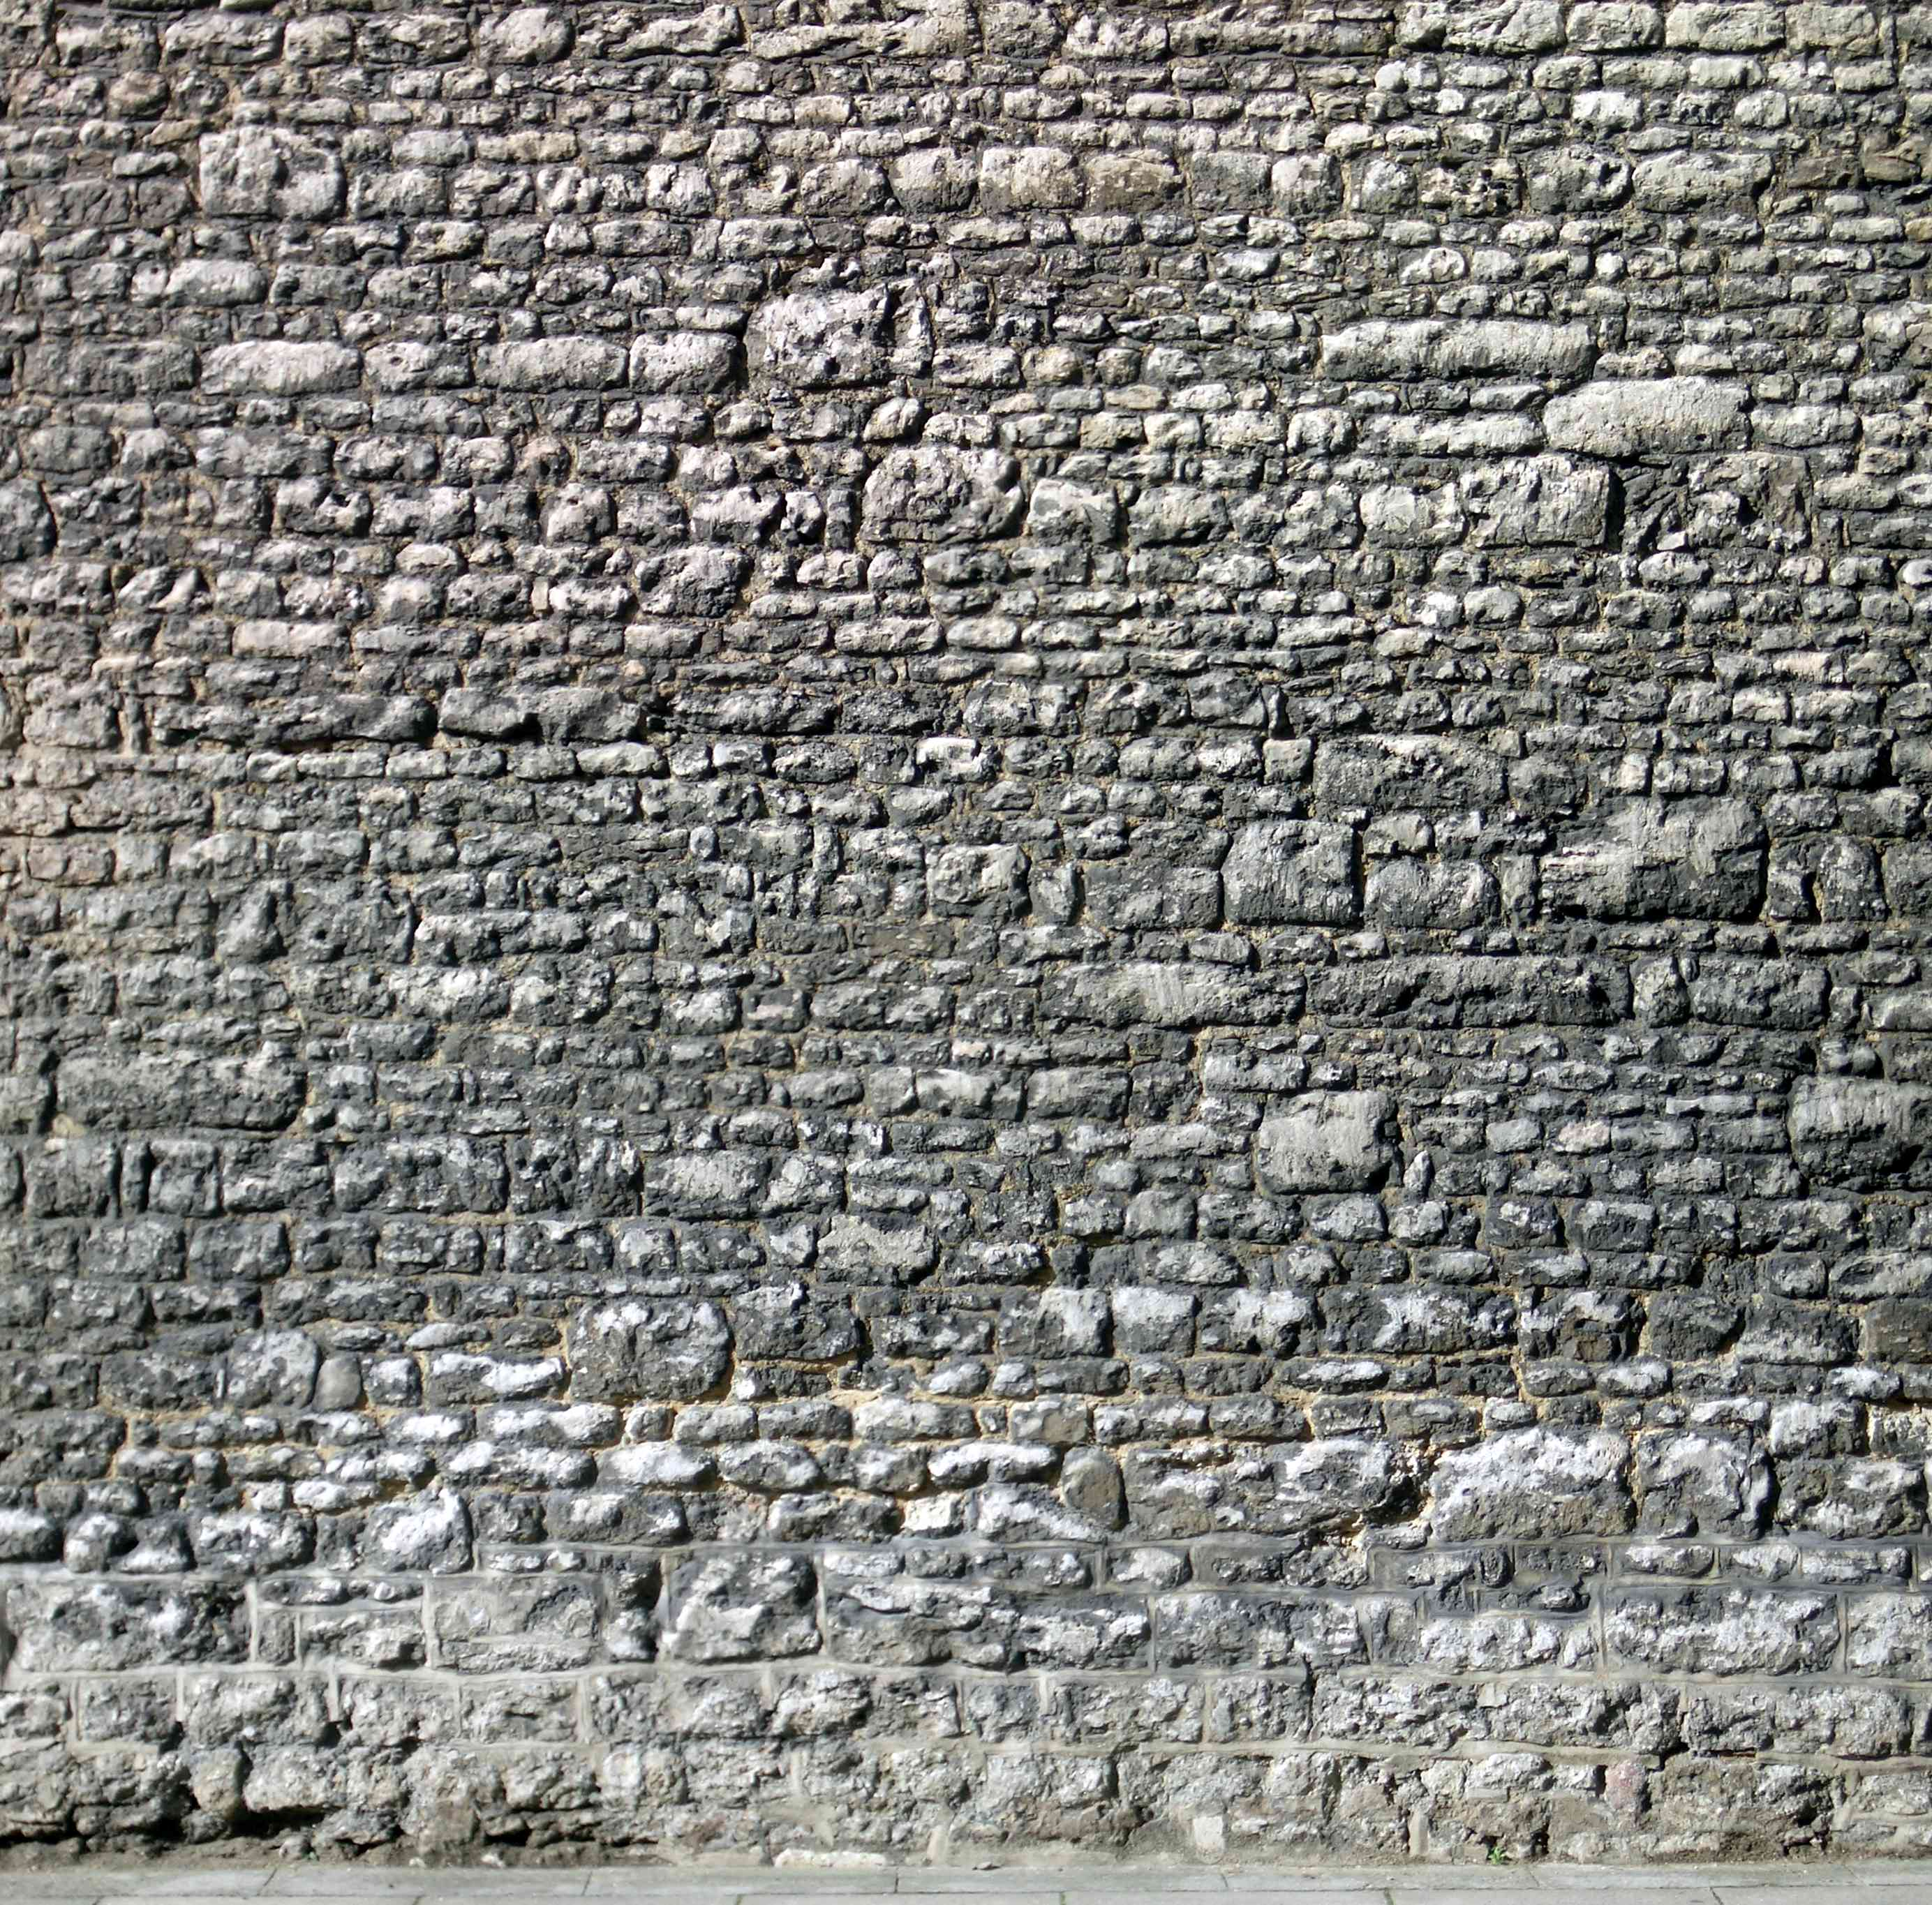 Stone walldetails  Stone wall image 500x493 pixels. Medieval Stone Texture